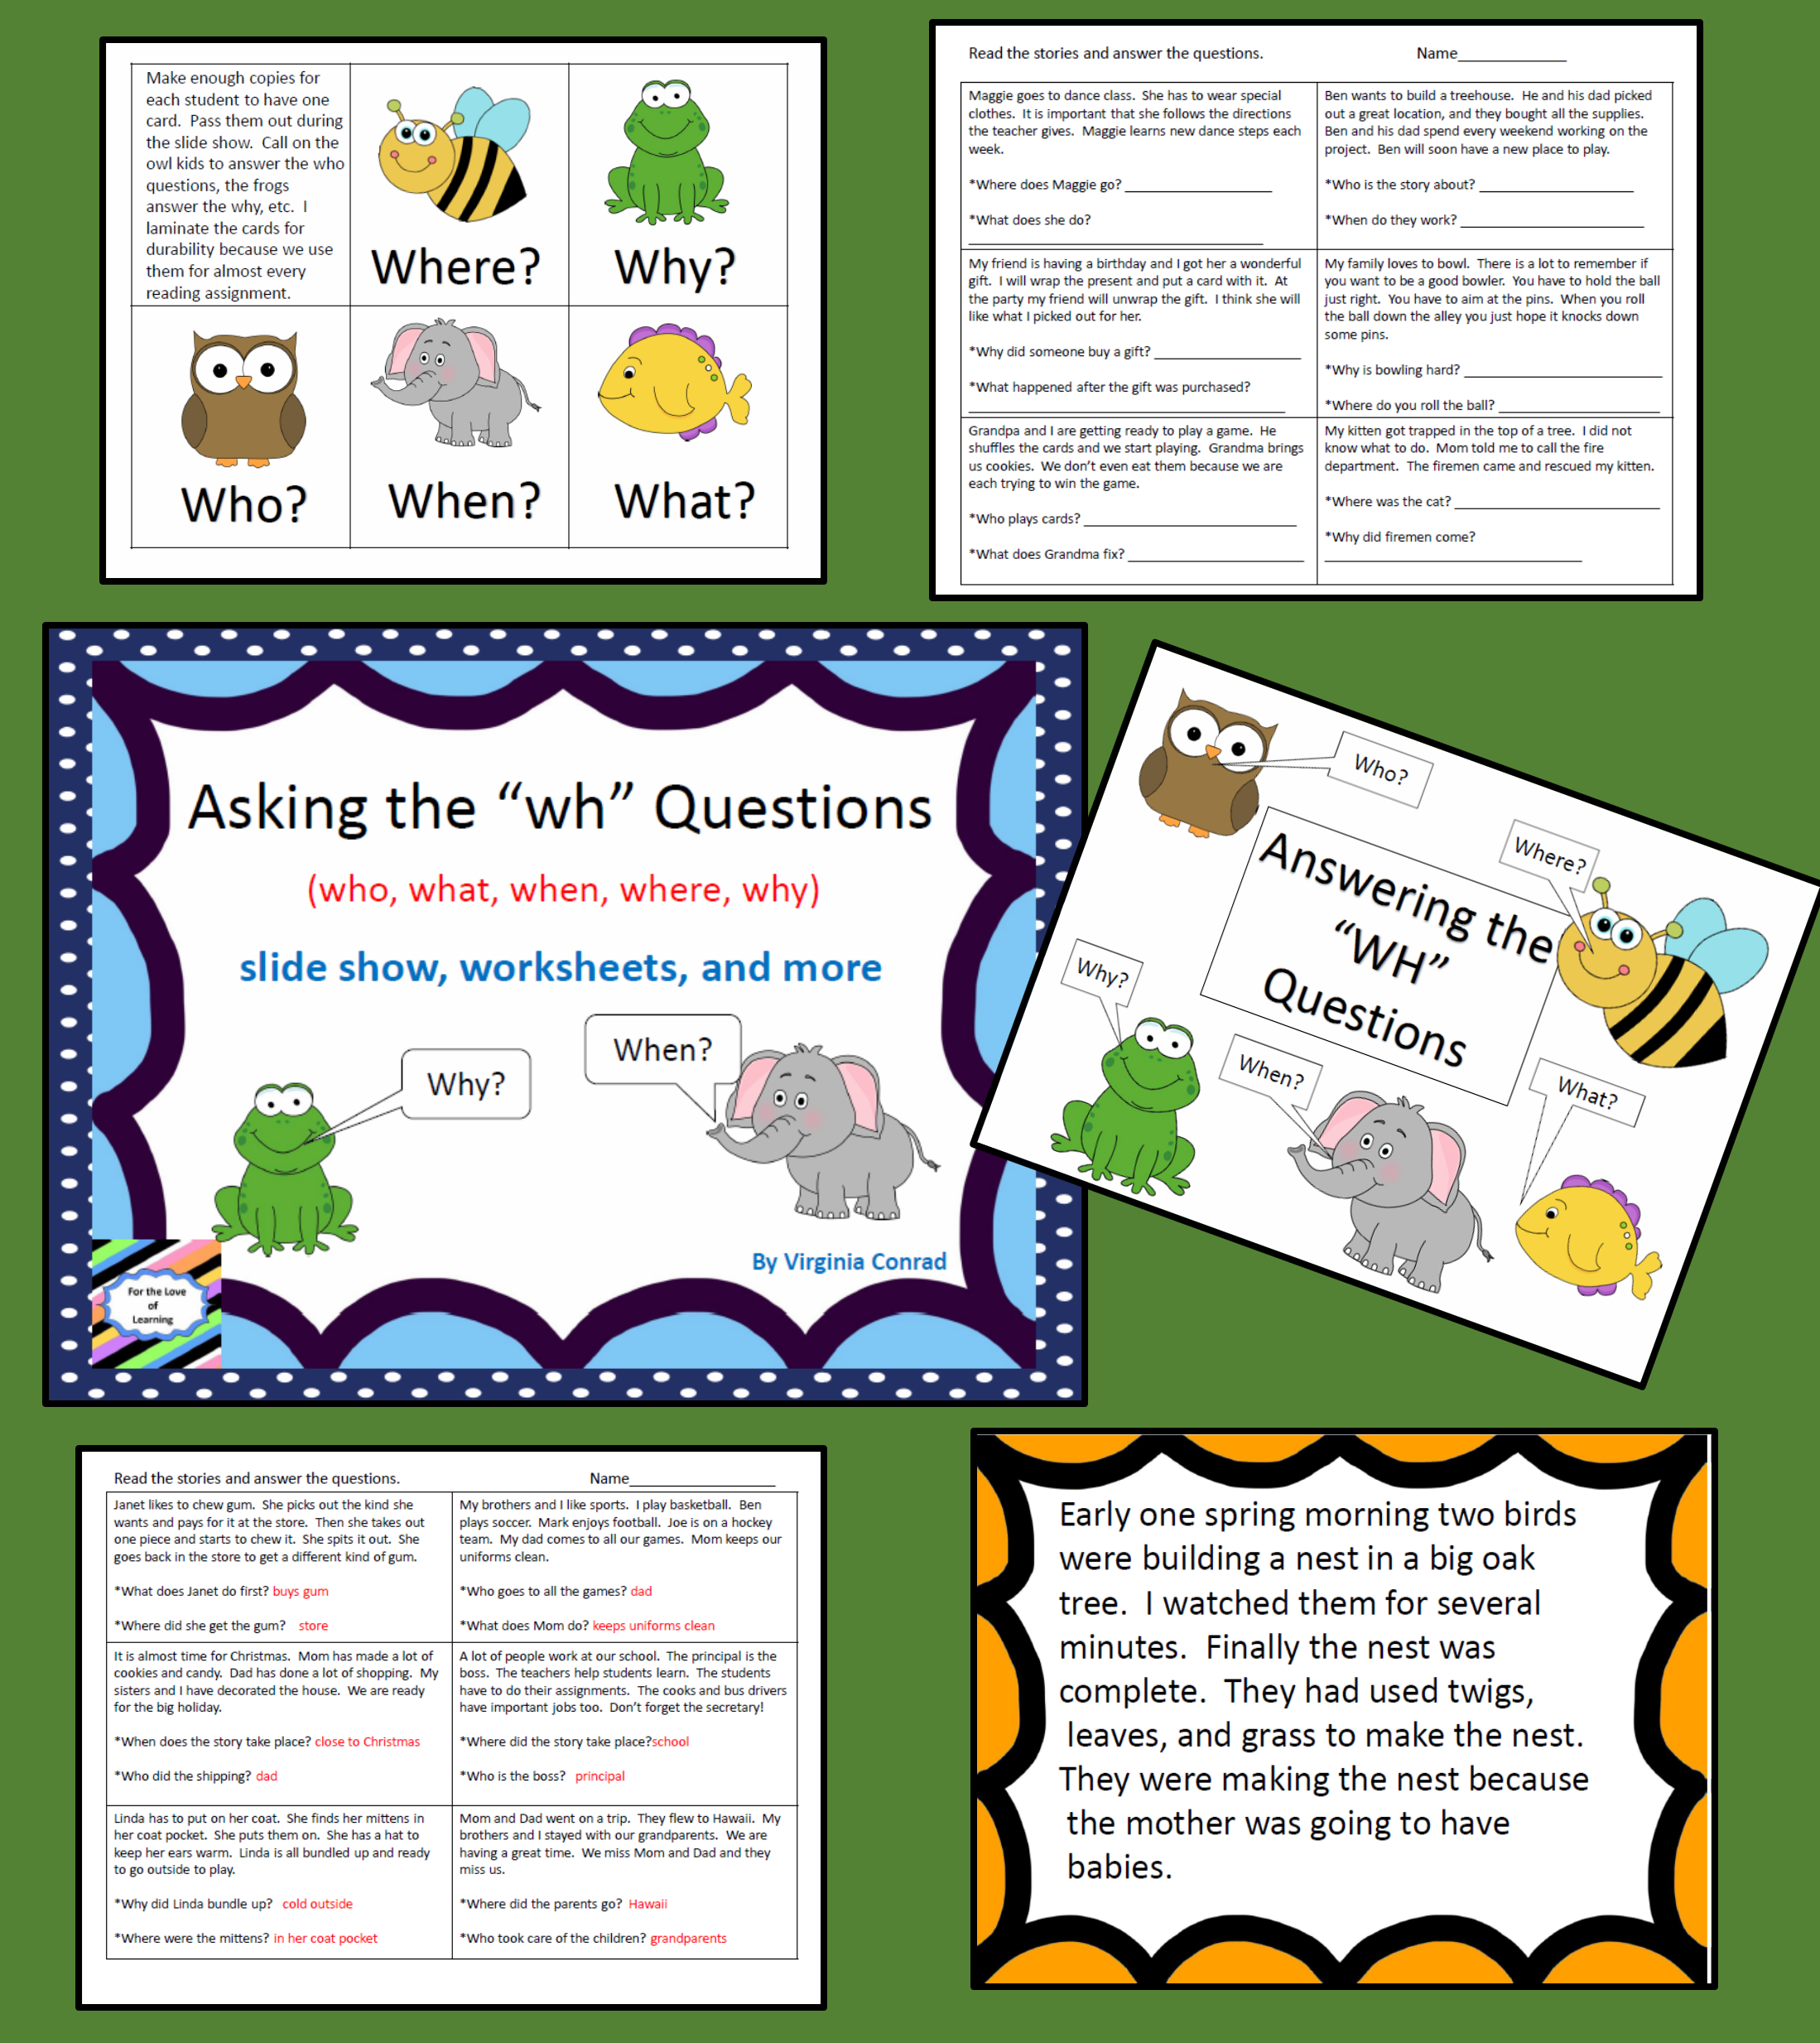 Answering The Wh Questions Slide Show And Worksheets